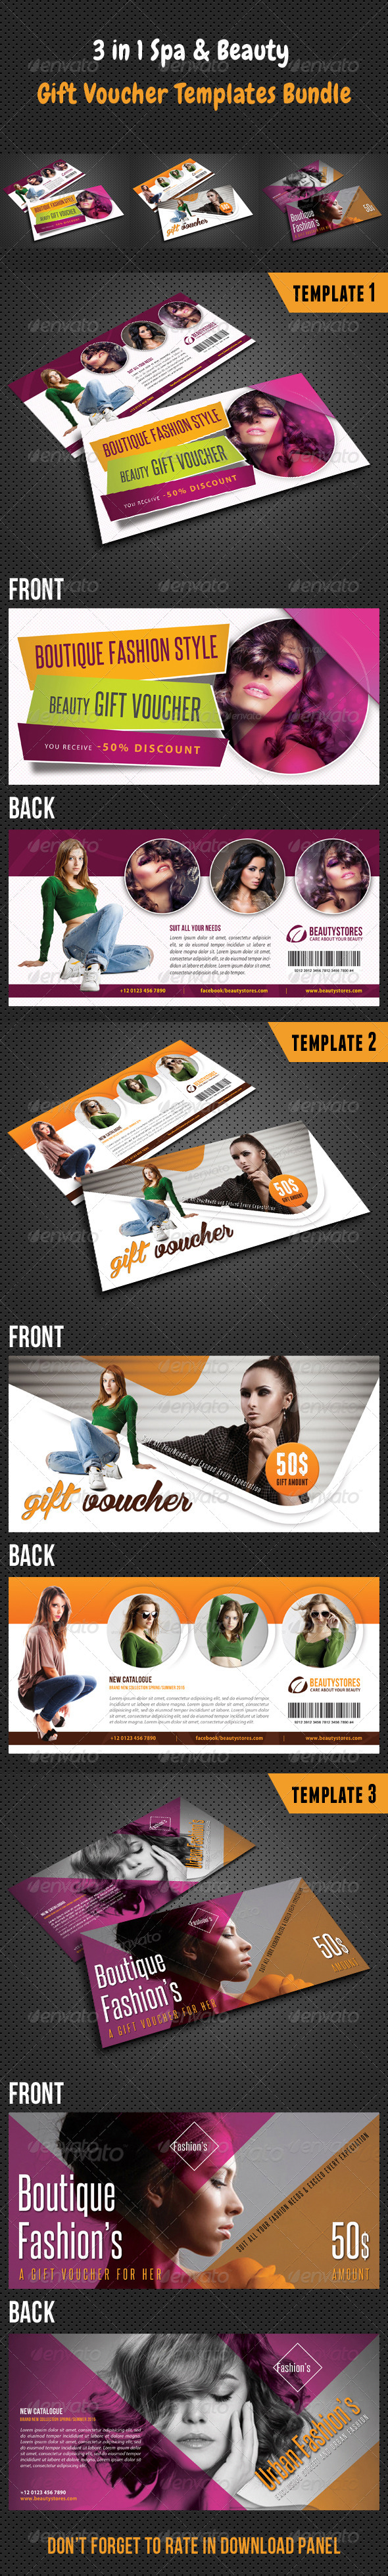 GraphicRiver 3 in 1 Beauty and Spa Gift Voucher Bundle 02 8520953